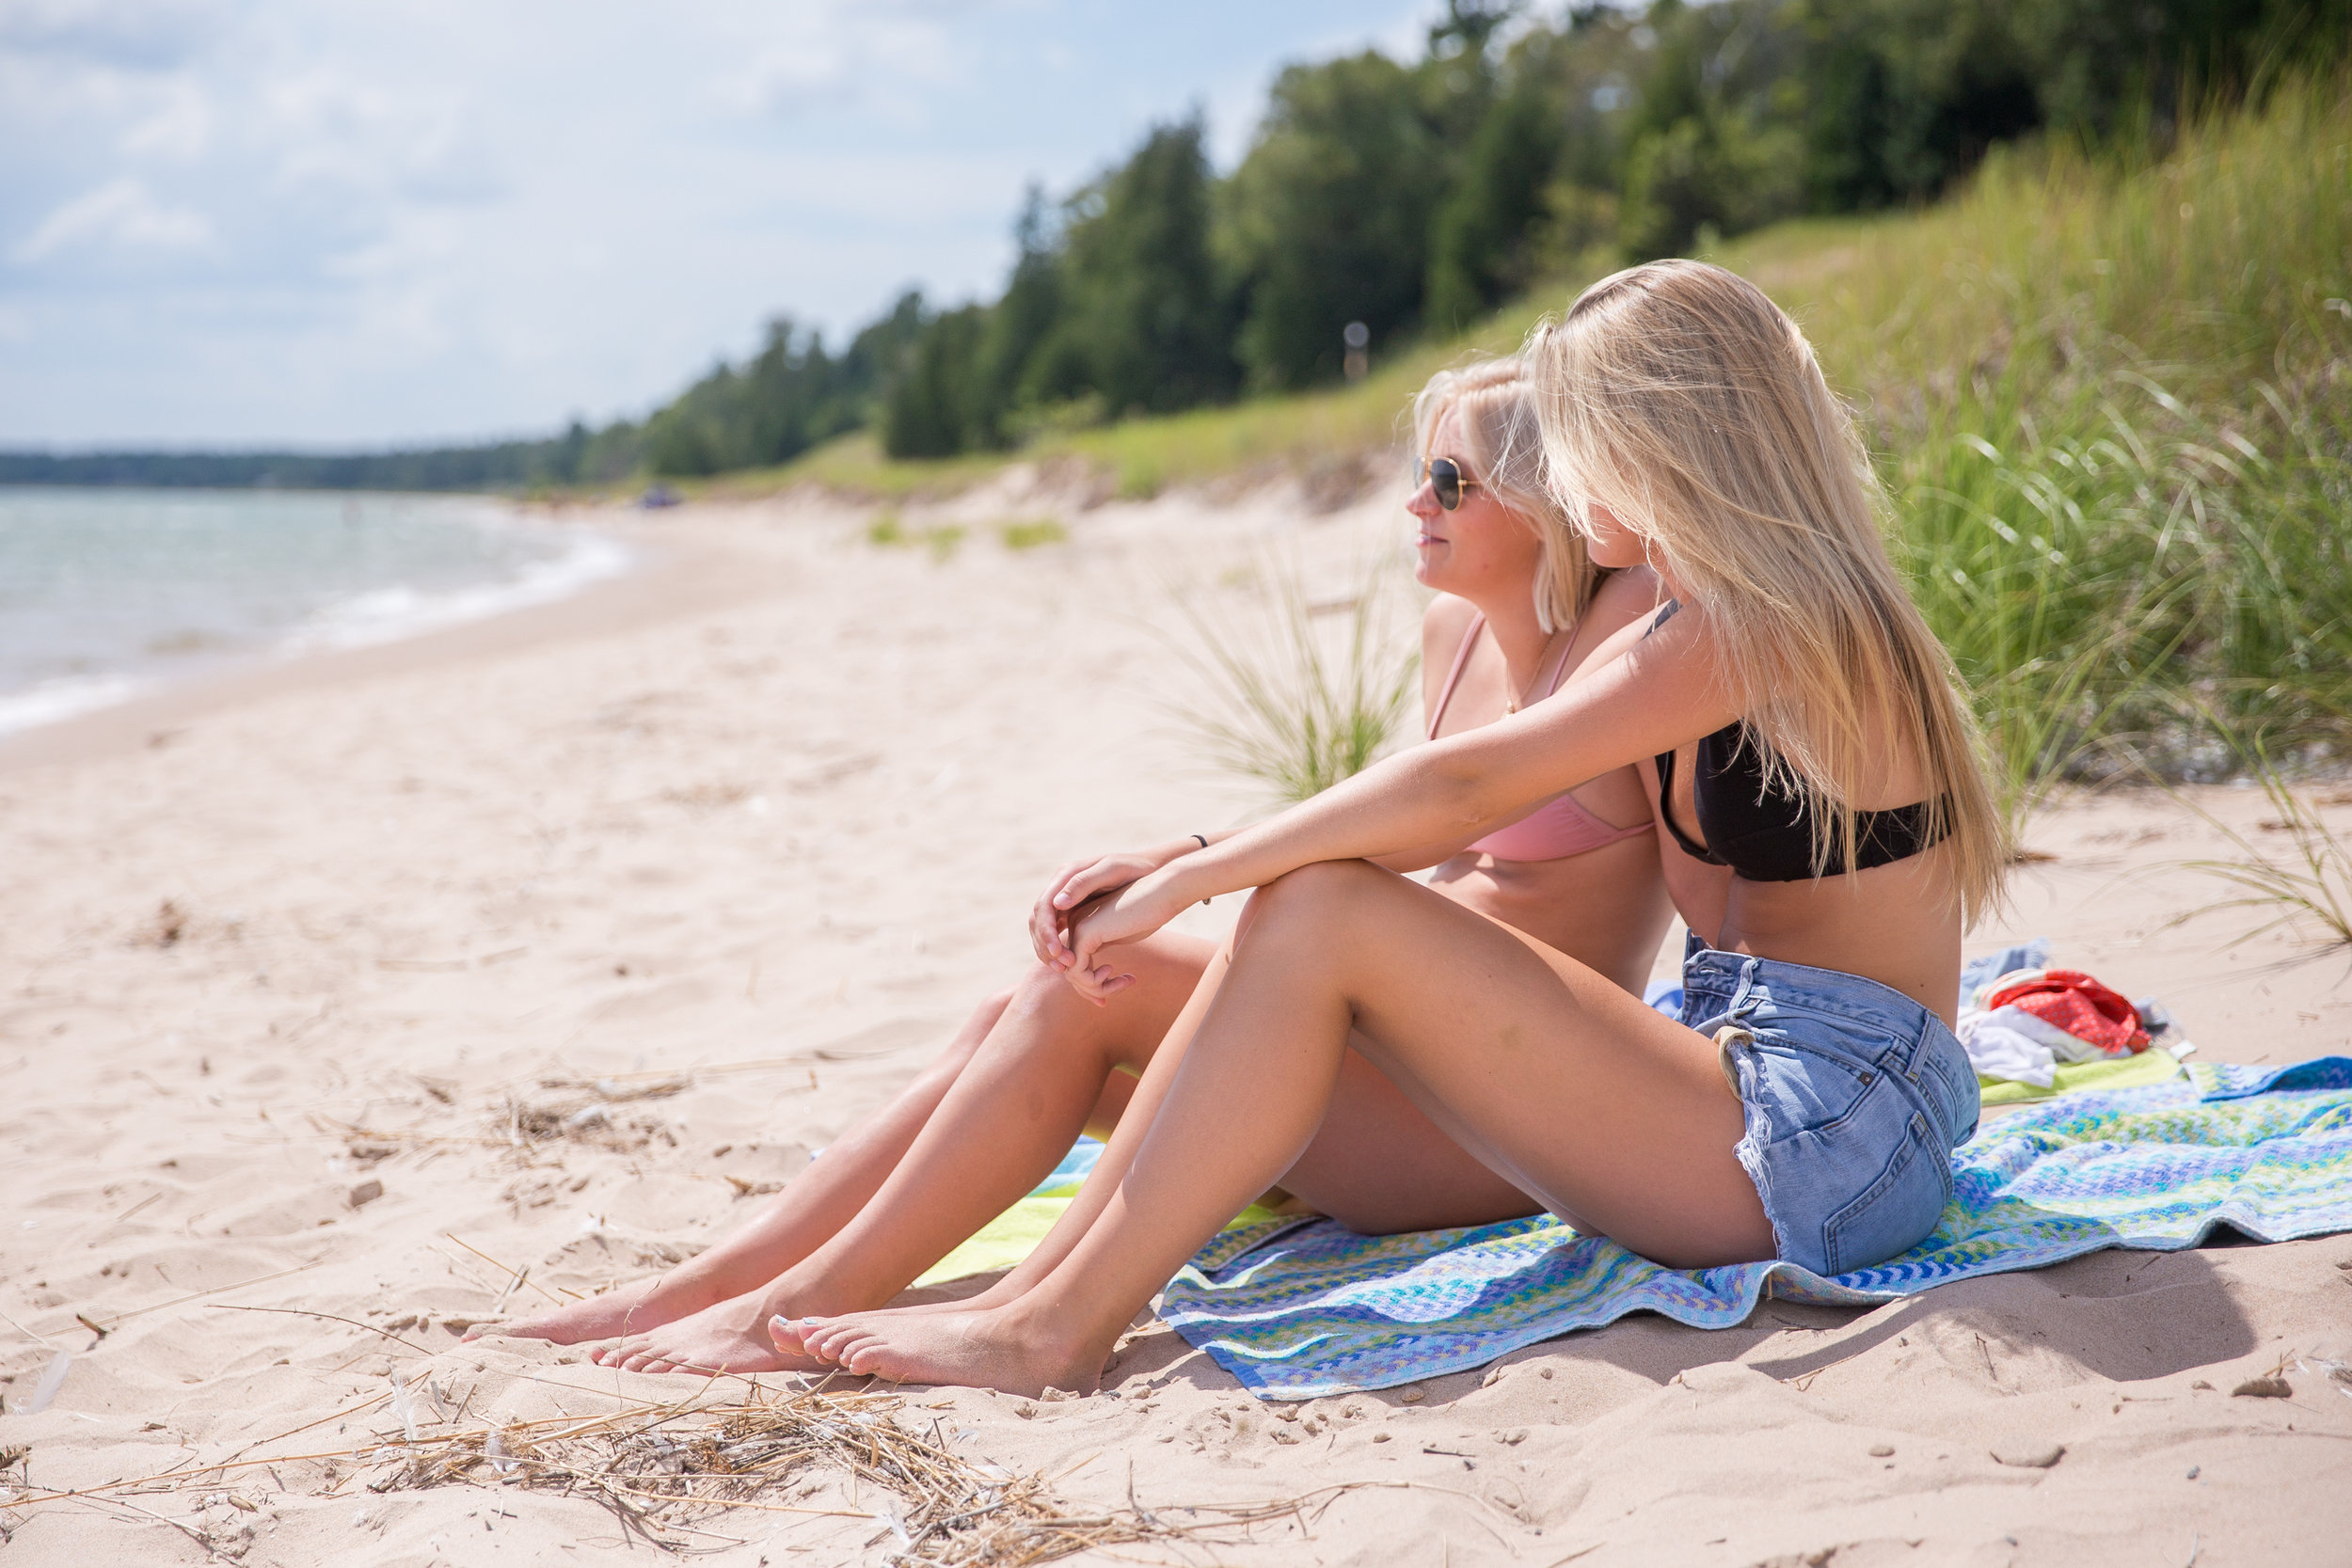 Two young college students home for the summer enjoying Lake Michigan's White Fish Dunes in Door County, Wisconsin.